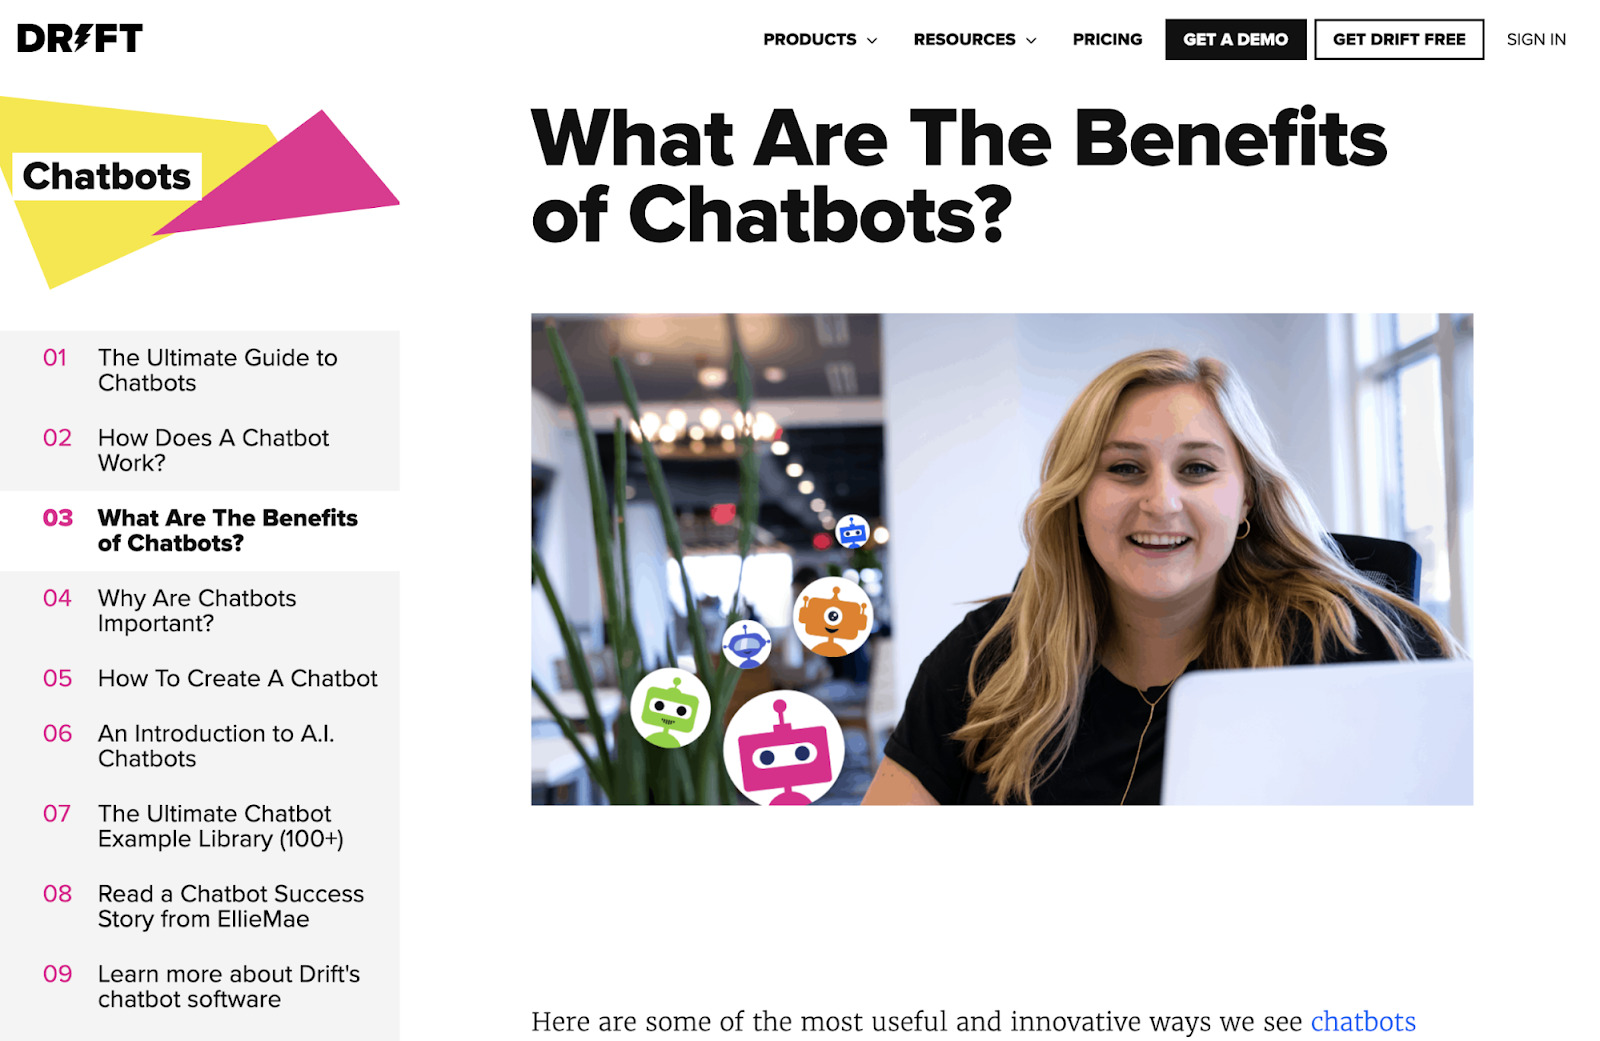 Drift's subpage about the benefits of chatbots